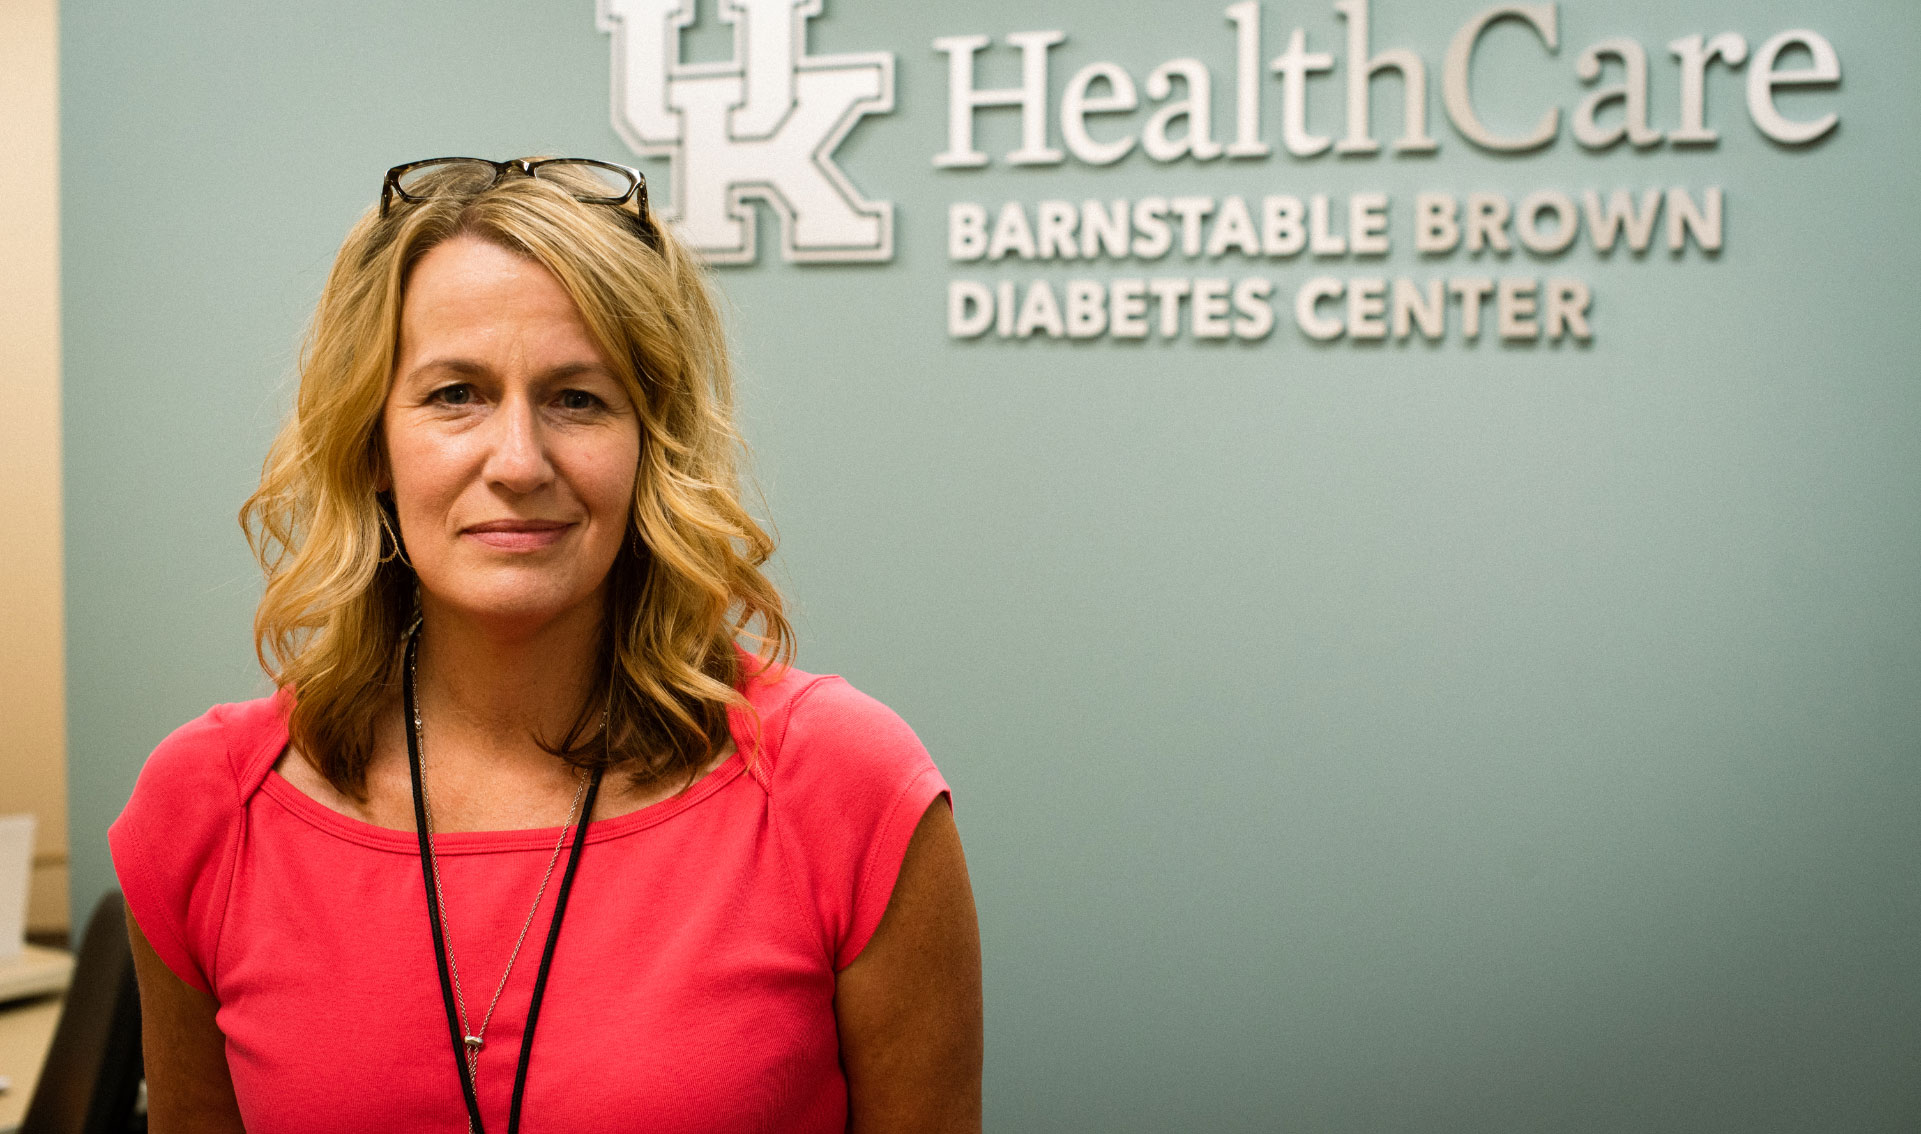 Sheri Setser-Legg, a middle-aged white woman with curled blonde hair, stands in front of a UK HealthCare Barnstable Brown Diabetes Center sign. She is wearing a pink top, has her glasses on top of her head, and is smiling very slightly.